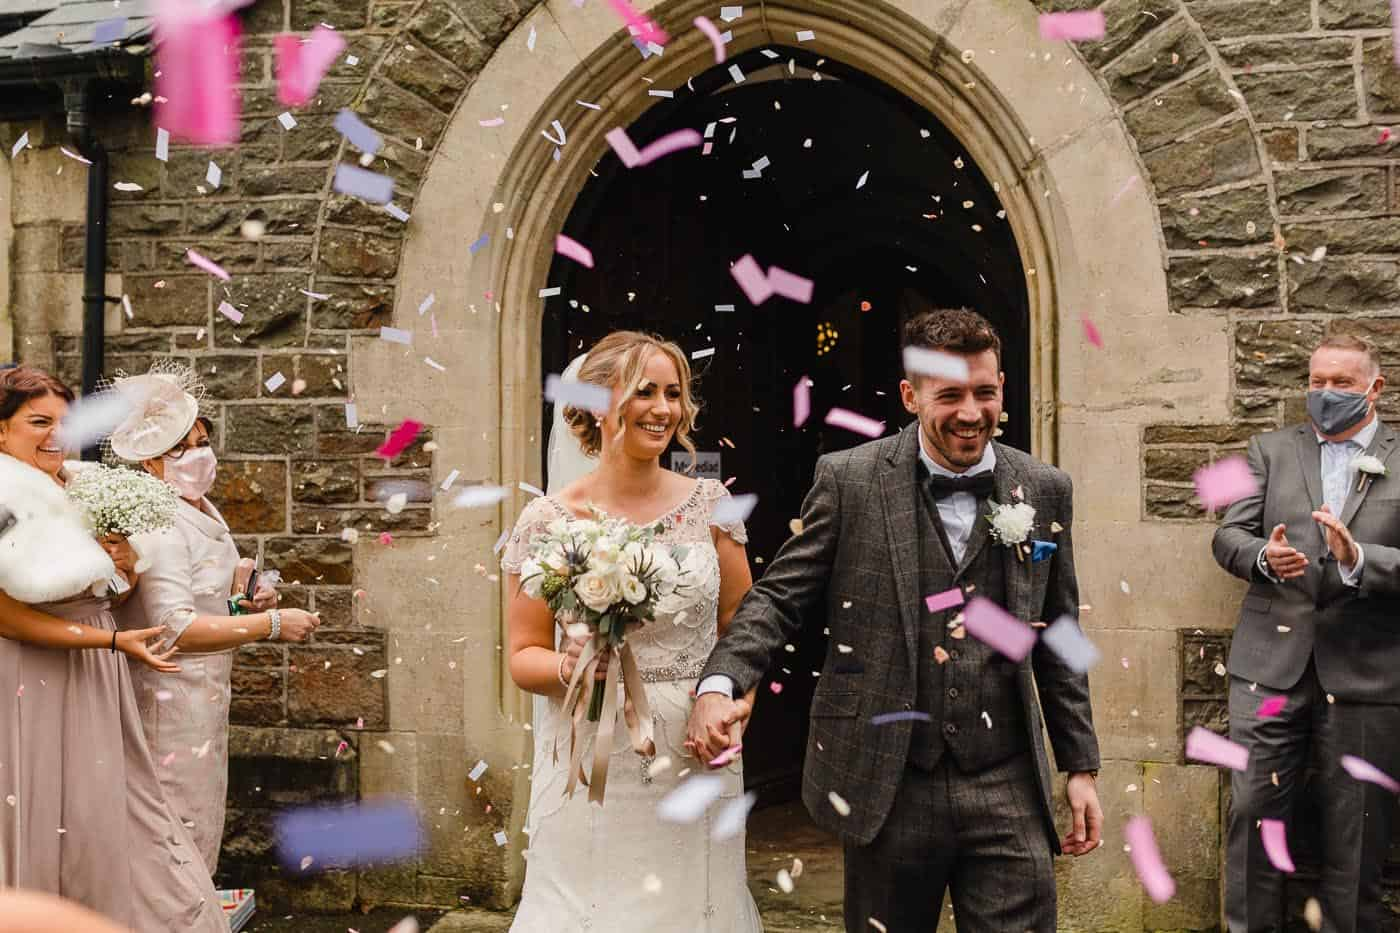 bride and groom exit with confetti